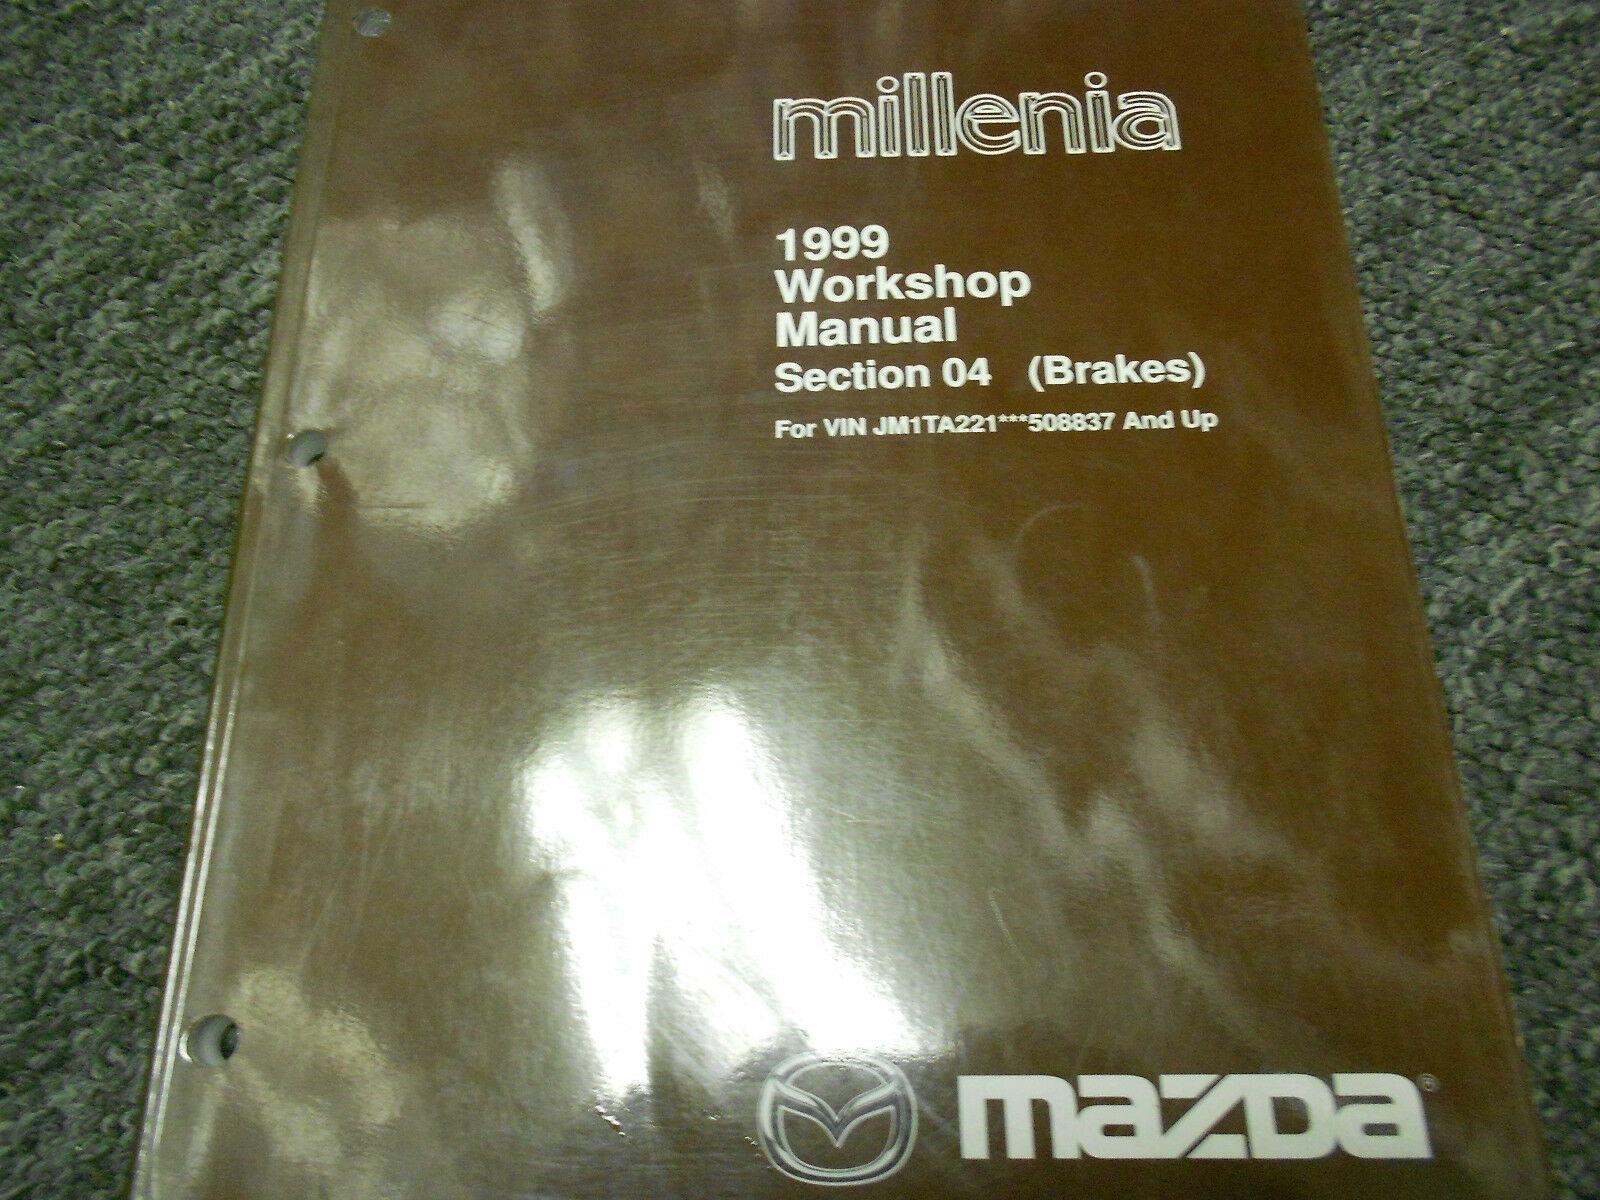 1999 Mazda Millenia Section 04 Brakes Workshop Service Repair Shop Manual  OEM 99 1 of 8Only 3 available ...